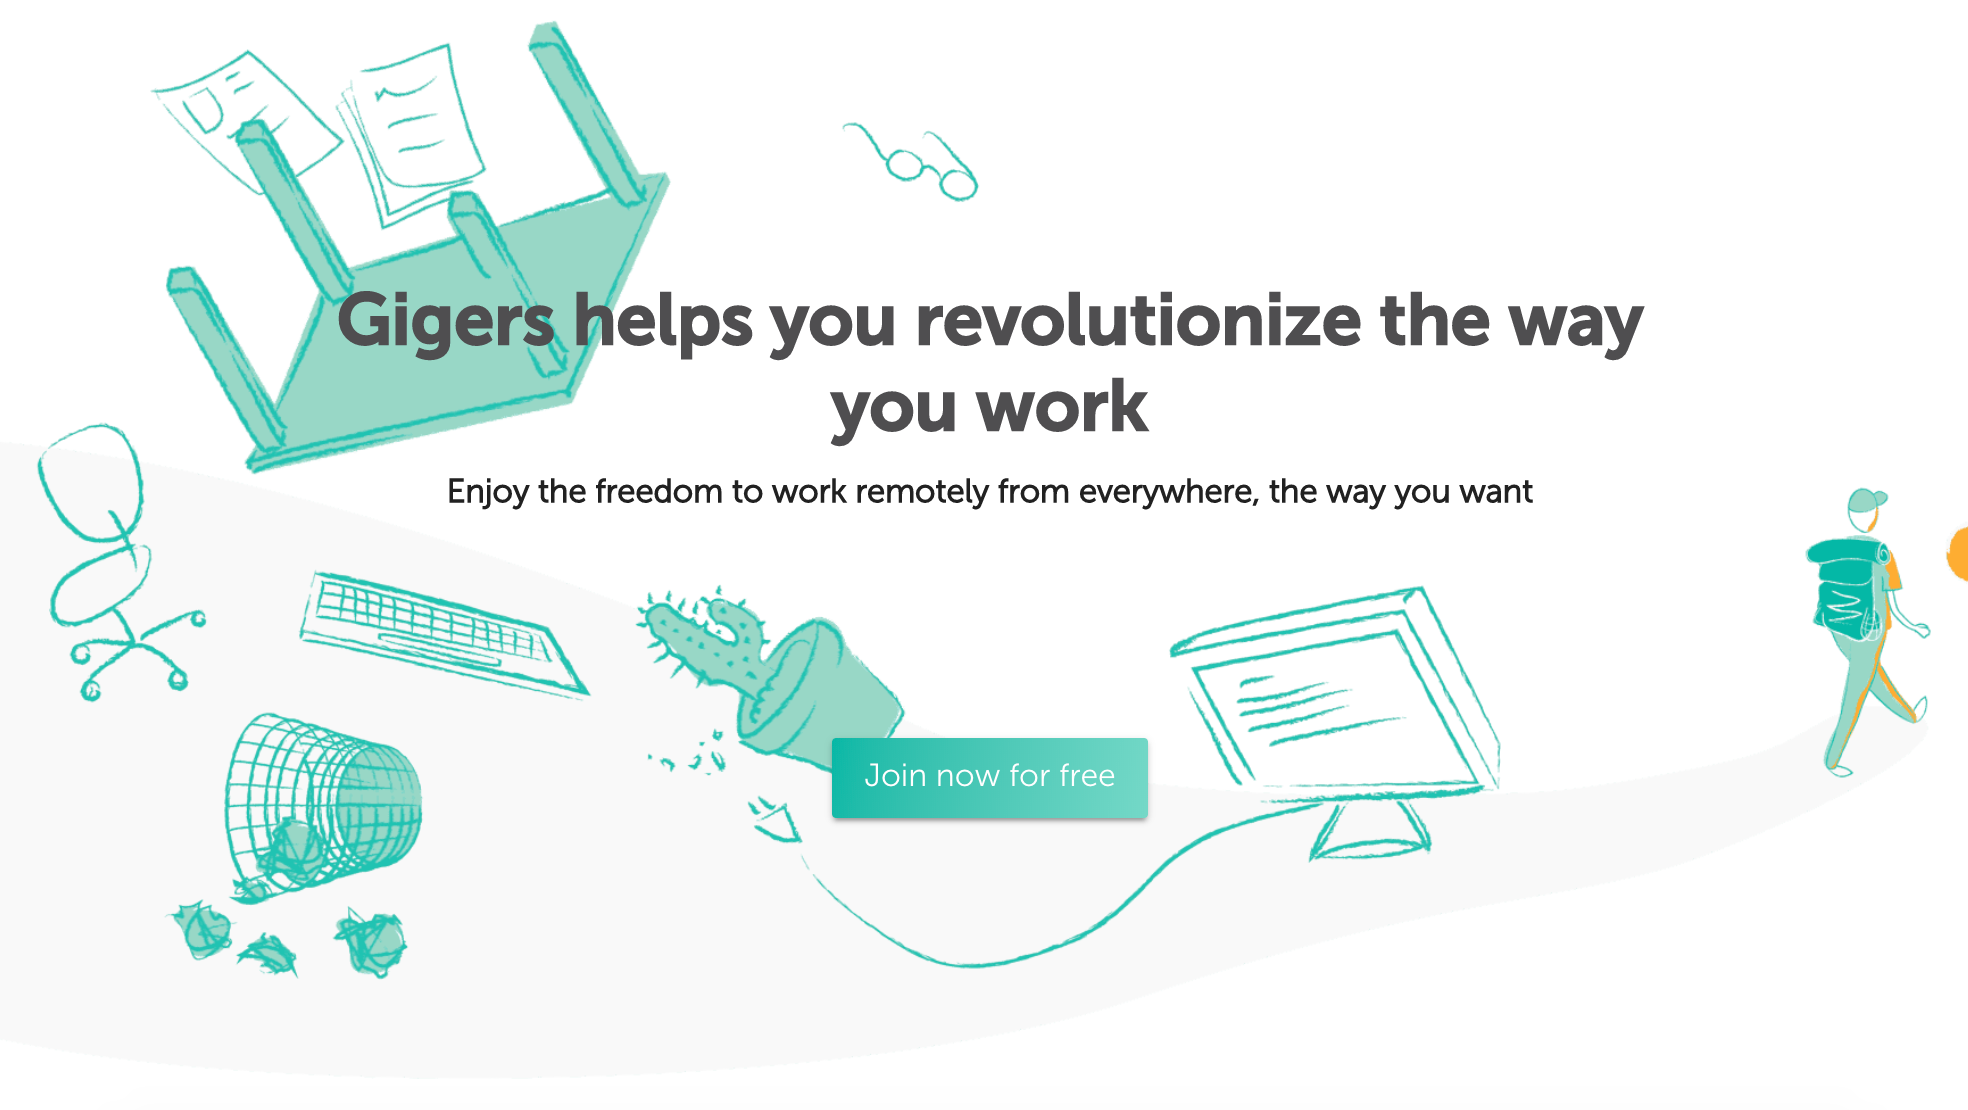 Gigers - Social community of digital nomads and remote workers